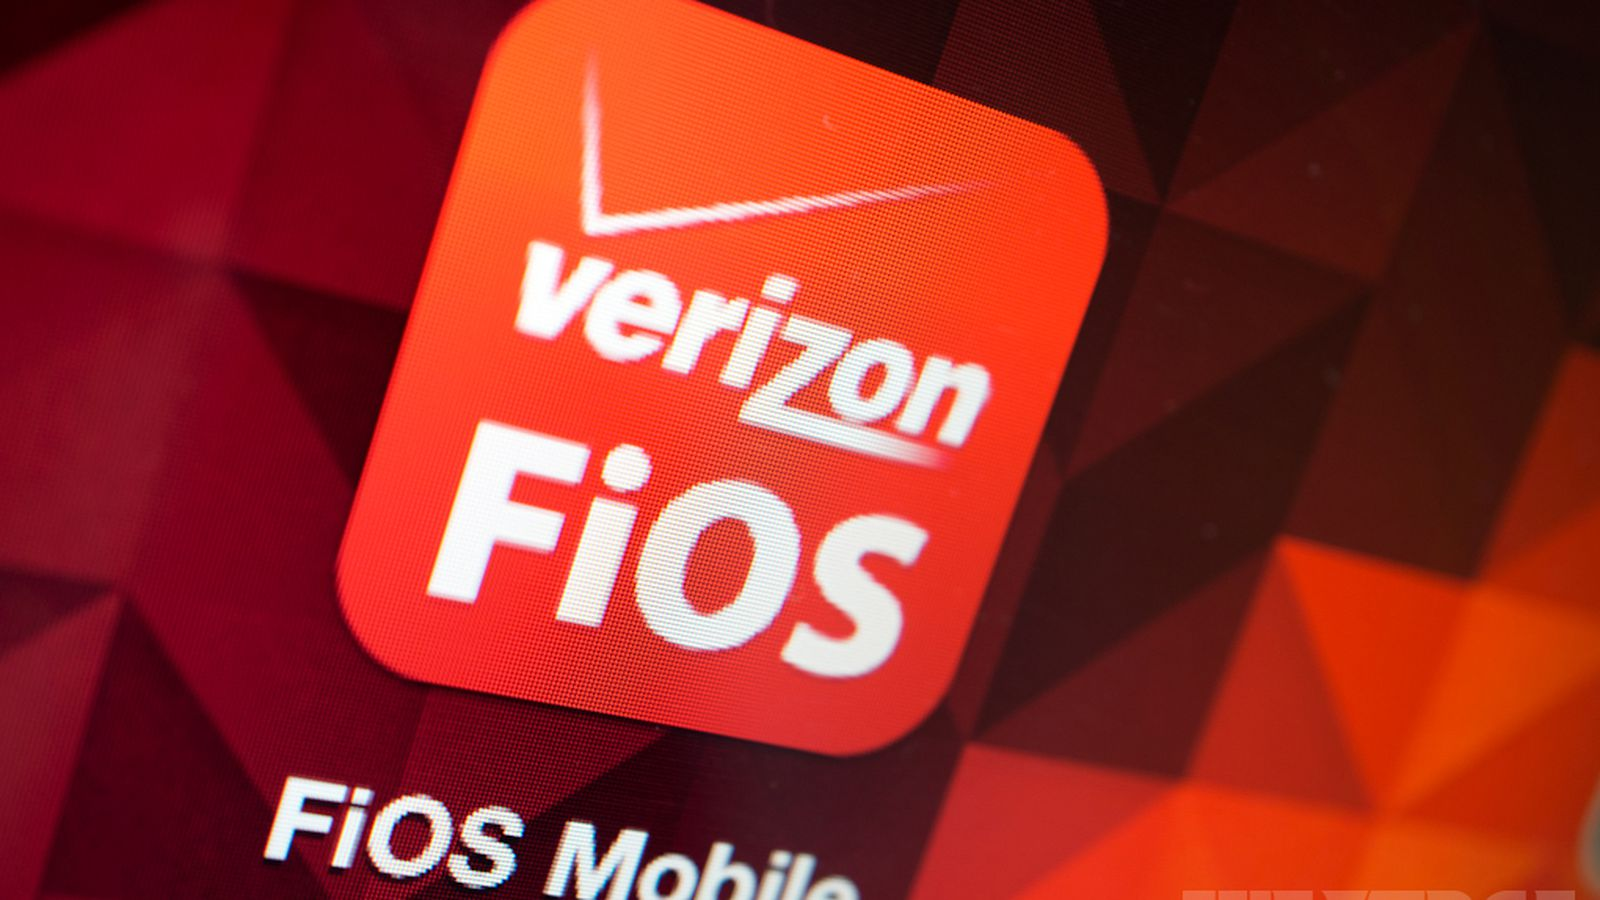 Verizon now lets you watch live FiOS TV anywhere you want ...